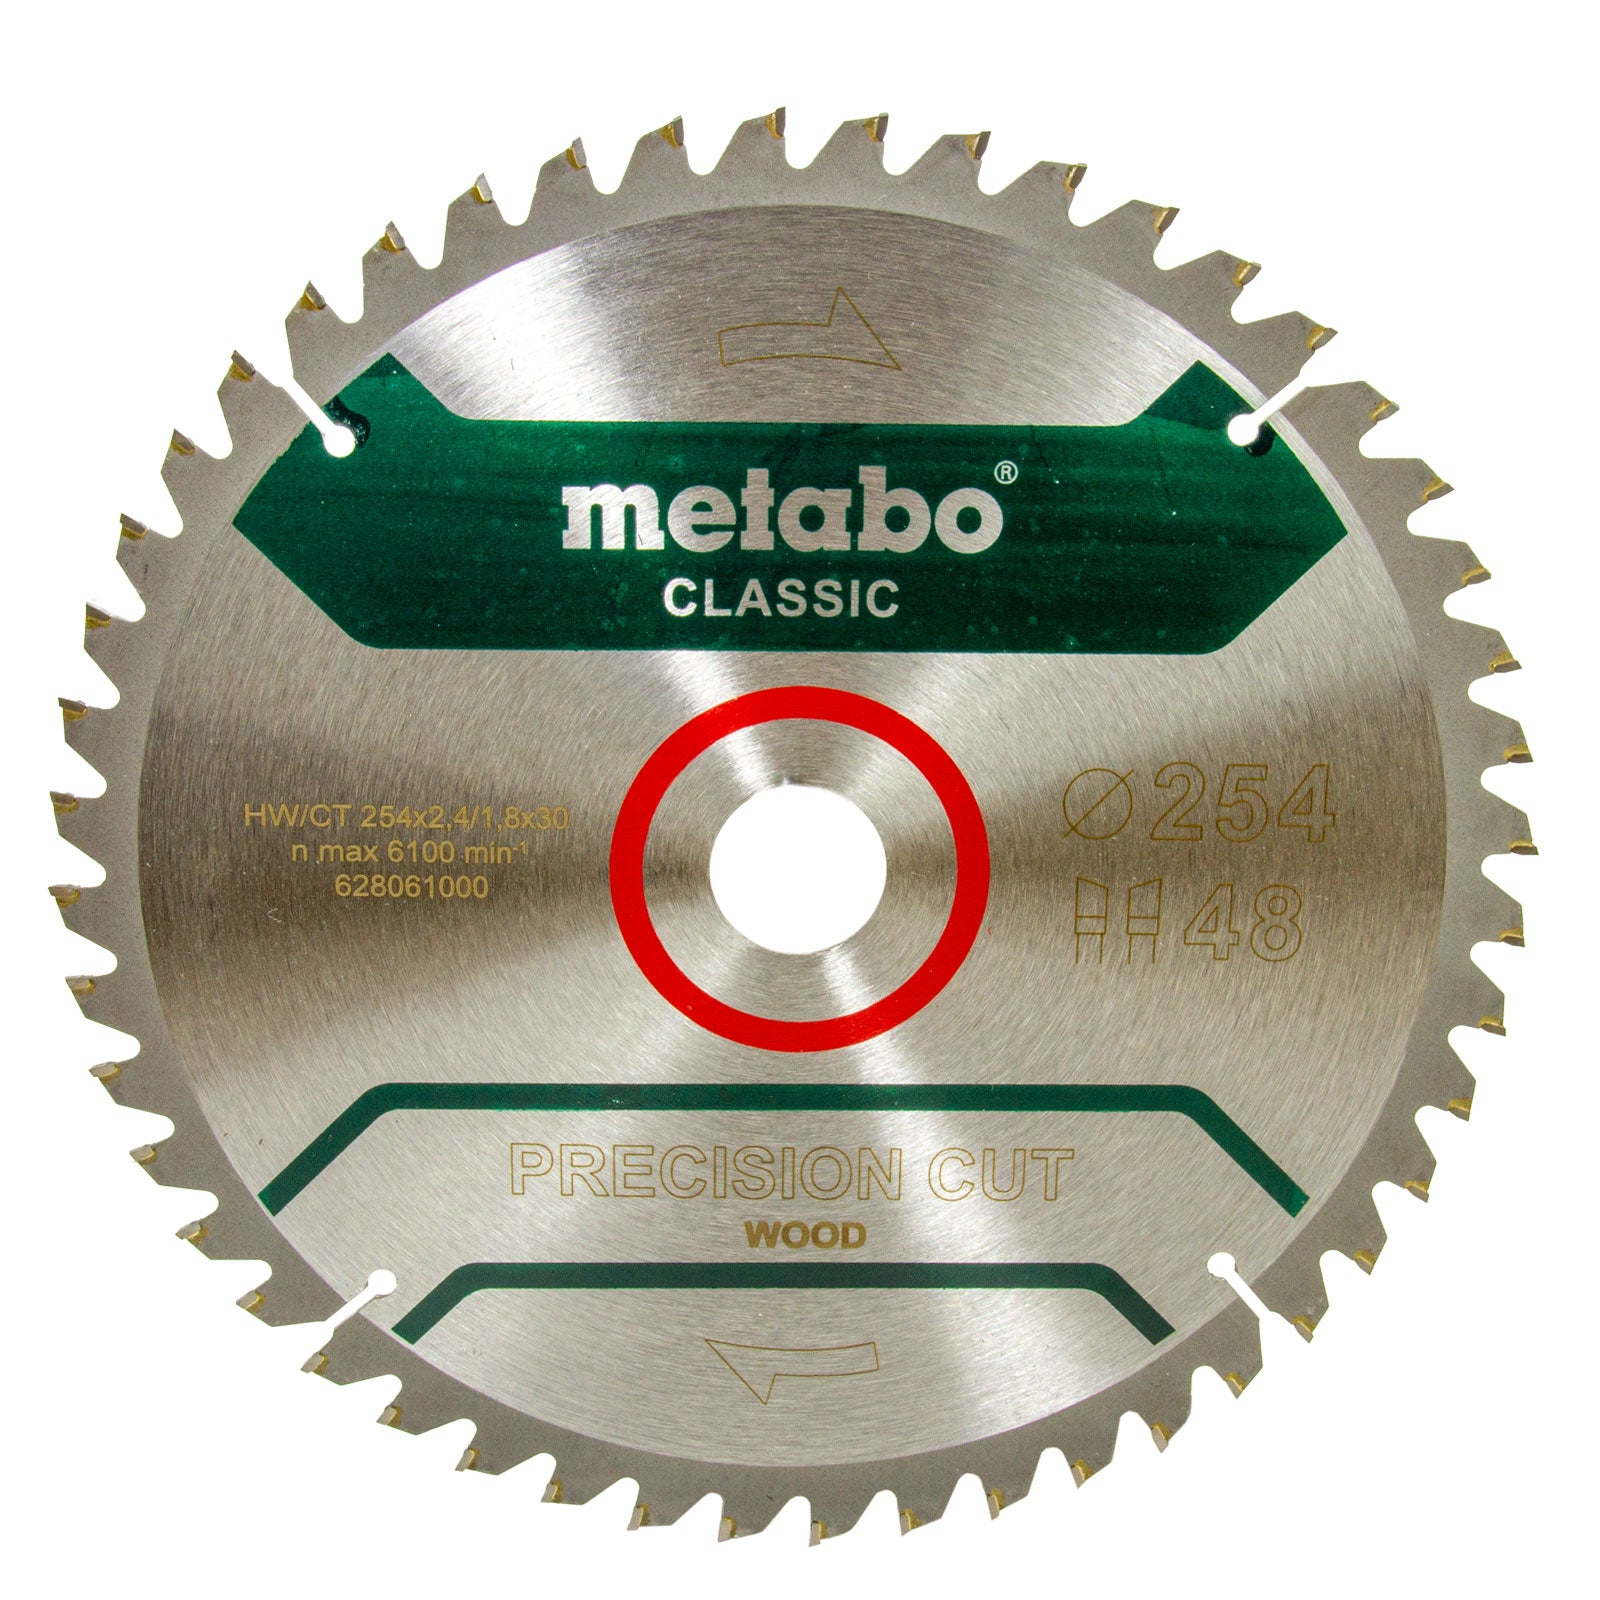 Metabo Kreissägeblatt PRECISION CUT WOOD - CLASSIC, 254 X 30 mm Z 48